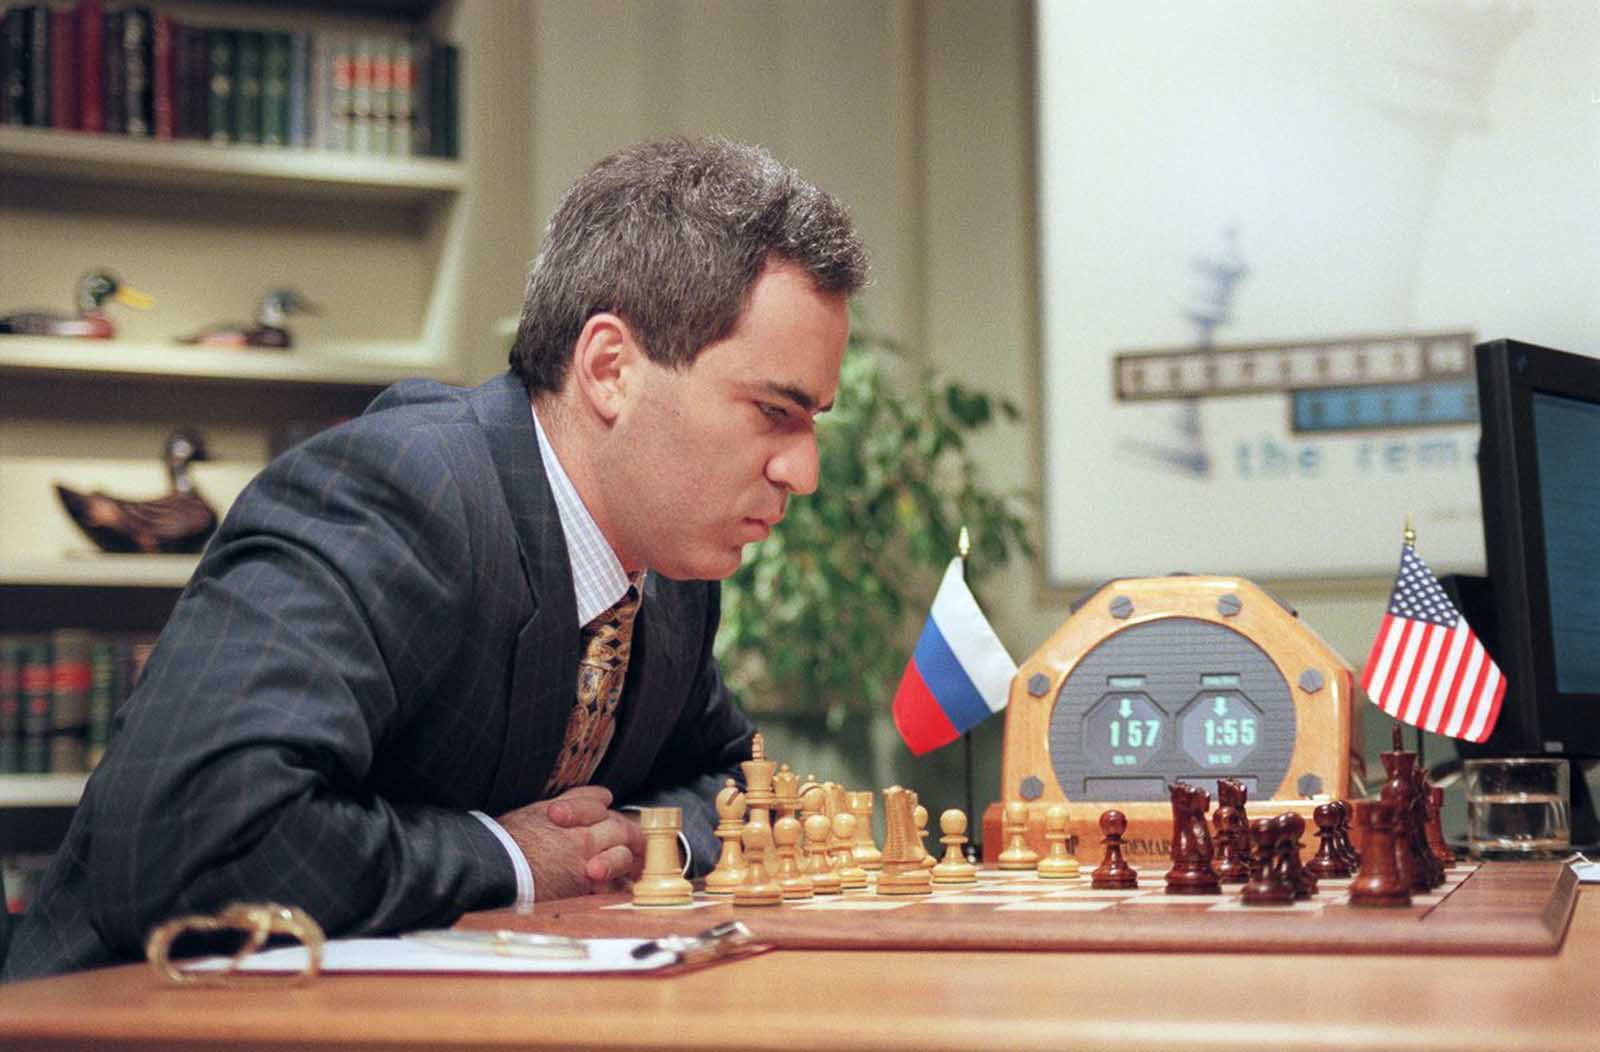 Kasparov ponders a move in Game 3, after winning the first game and losing the second.